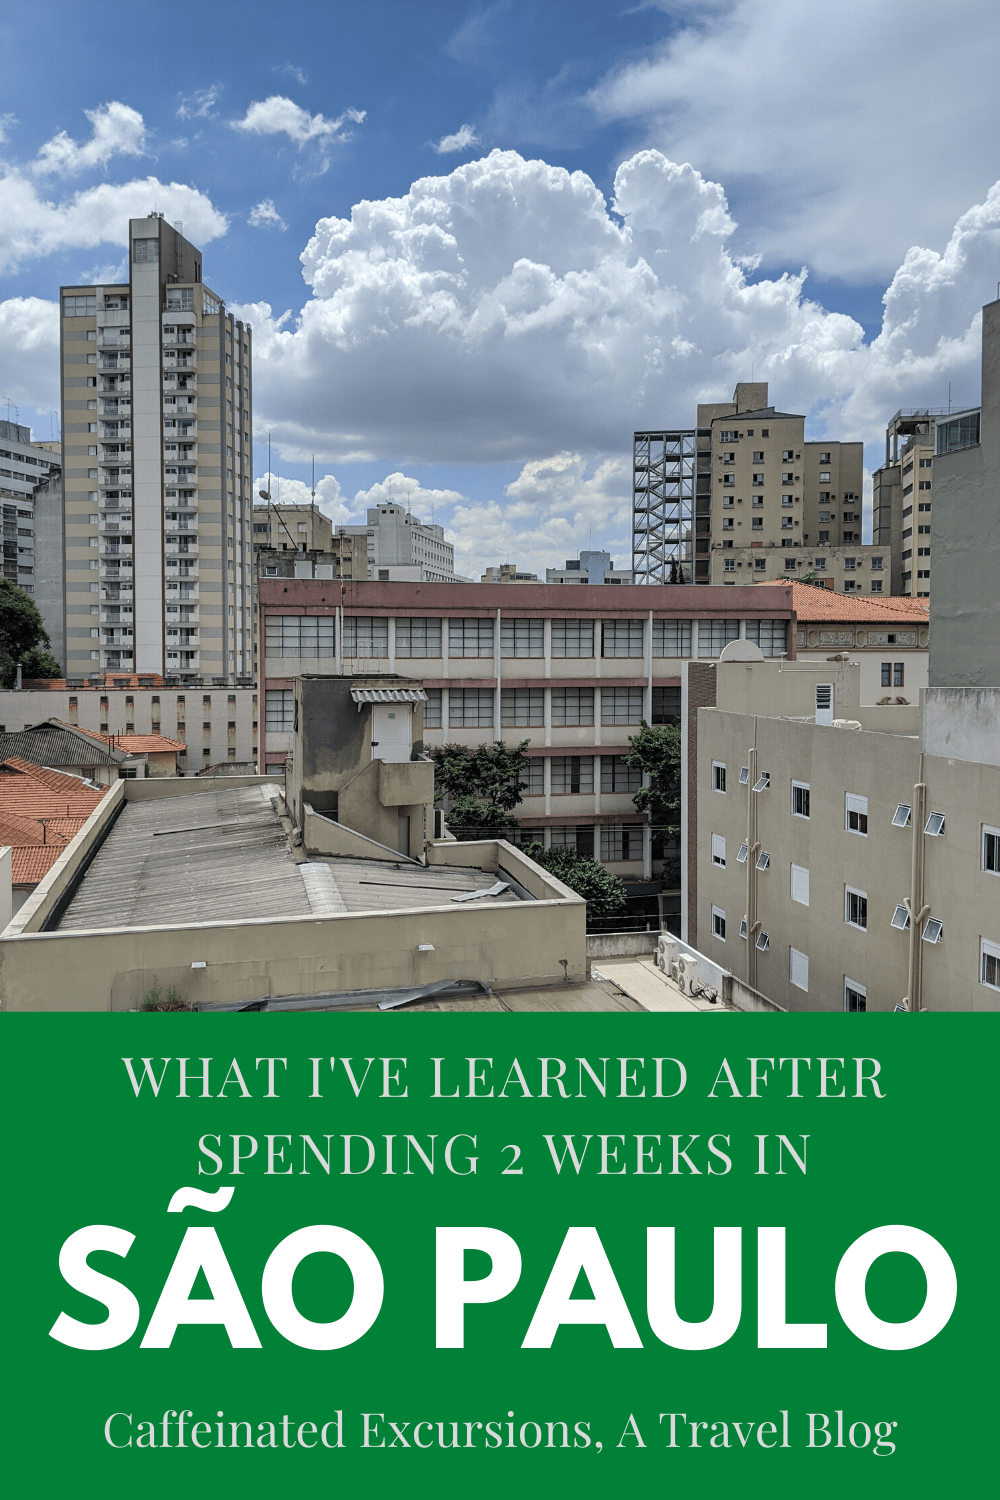 I've spent the past two weeks getting to know São Paulo, and I've got to say I'm already in love with the city! If you're considering a visit, check out my post for an honest review of what you can expect! #sãopaulo #sãopaulobrasil #brasil #brazil #sãopaulobrazil #saopaulobrazil #sampa #paulista #paulistano #bairrosdesaopaulo #visitbrazil #visitsaopaulo #braziltravelguide #saopaulotravelguide #southamericatravel #travelsouthamerica #travelbrazil #bestofsaopaulo #travelblog #travelblogger